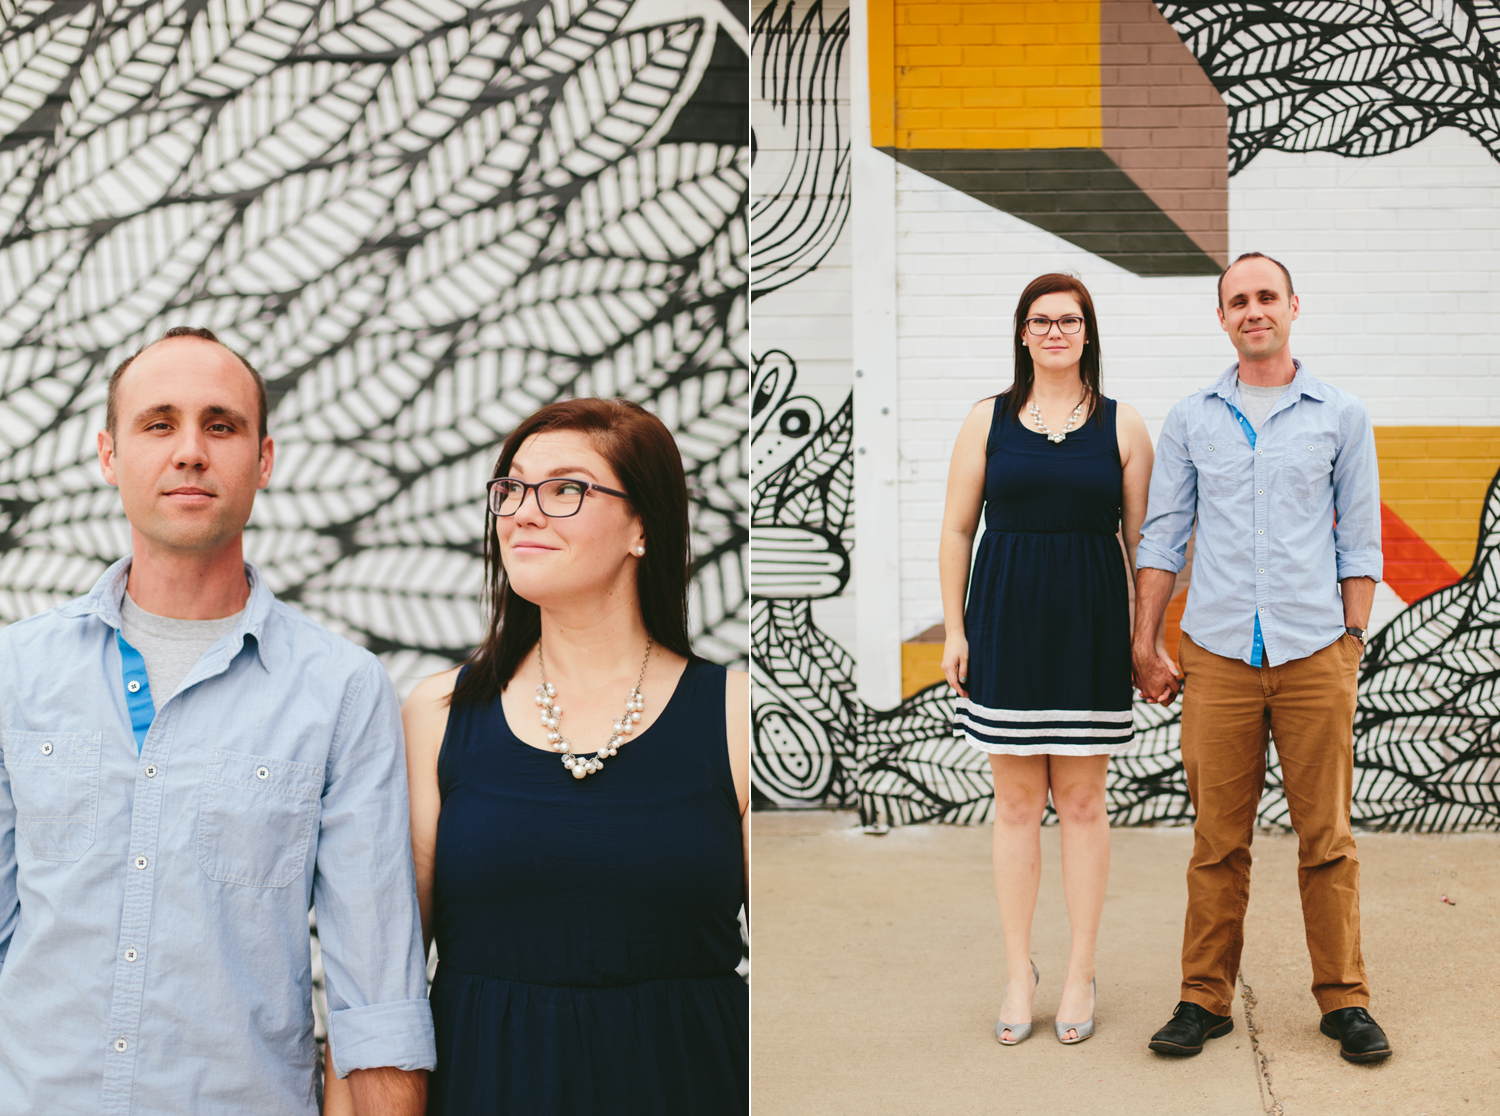 Jillian VanZytveld Photography Denver Colorado Engagement Portraits 03.jpg